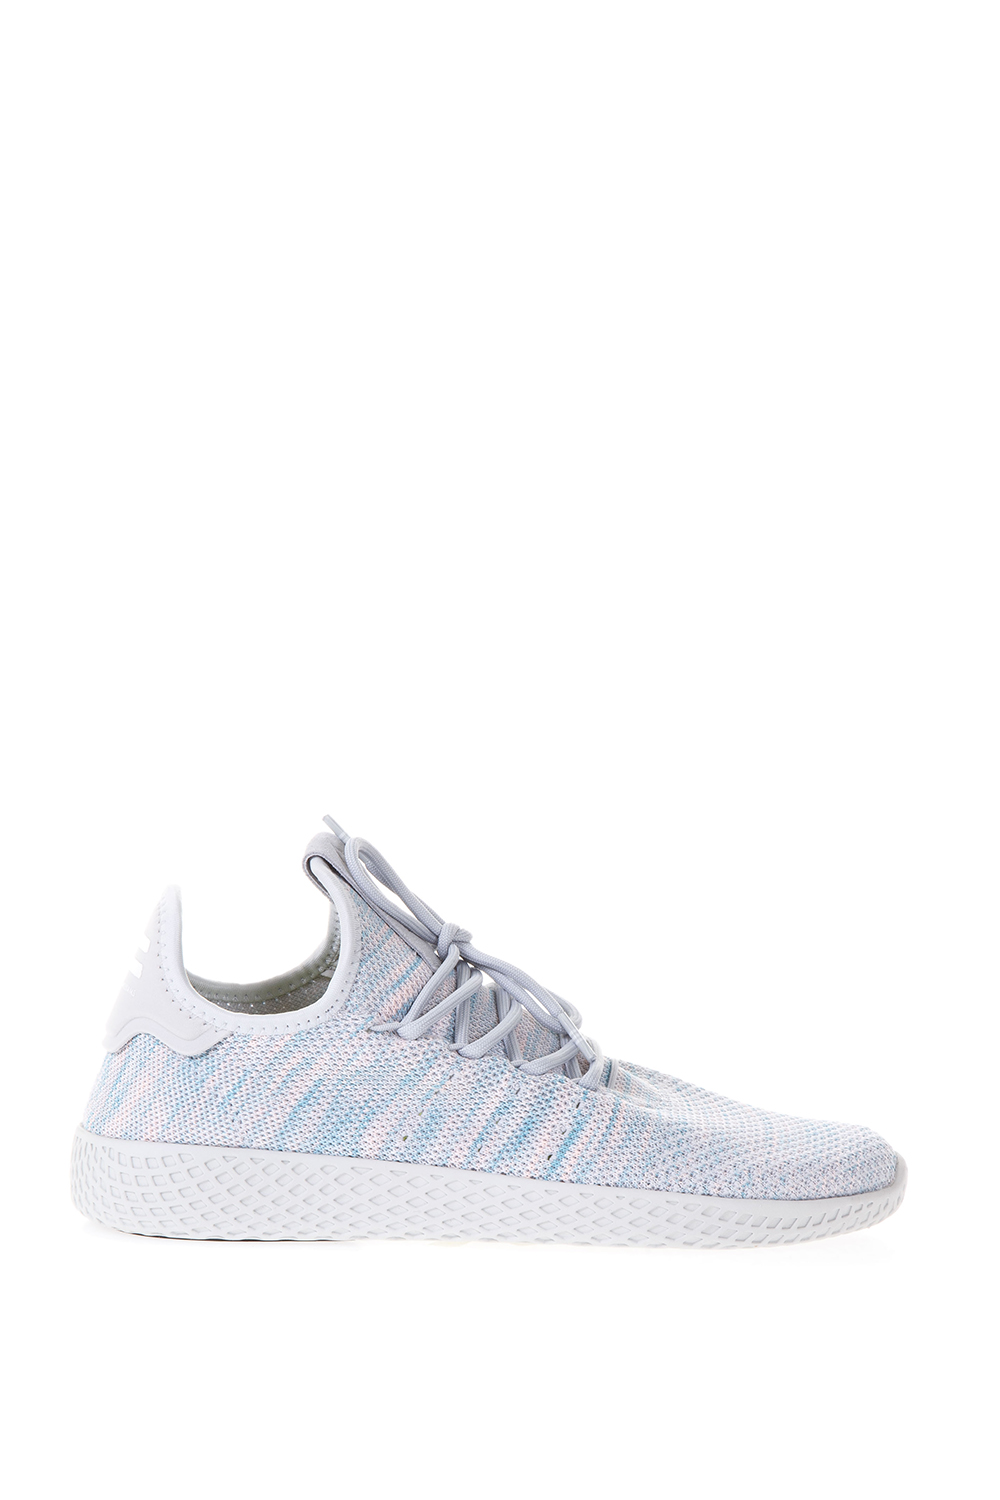 9e78f3af3dab3 PW TENNIS HU PRIMEKNIT SHOES SS 2017 - ADIDAS   PHARRELL WILLIAMS - Boutique  Galiano